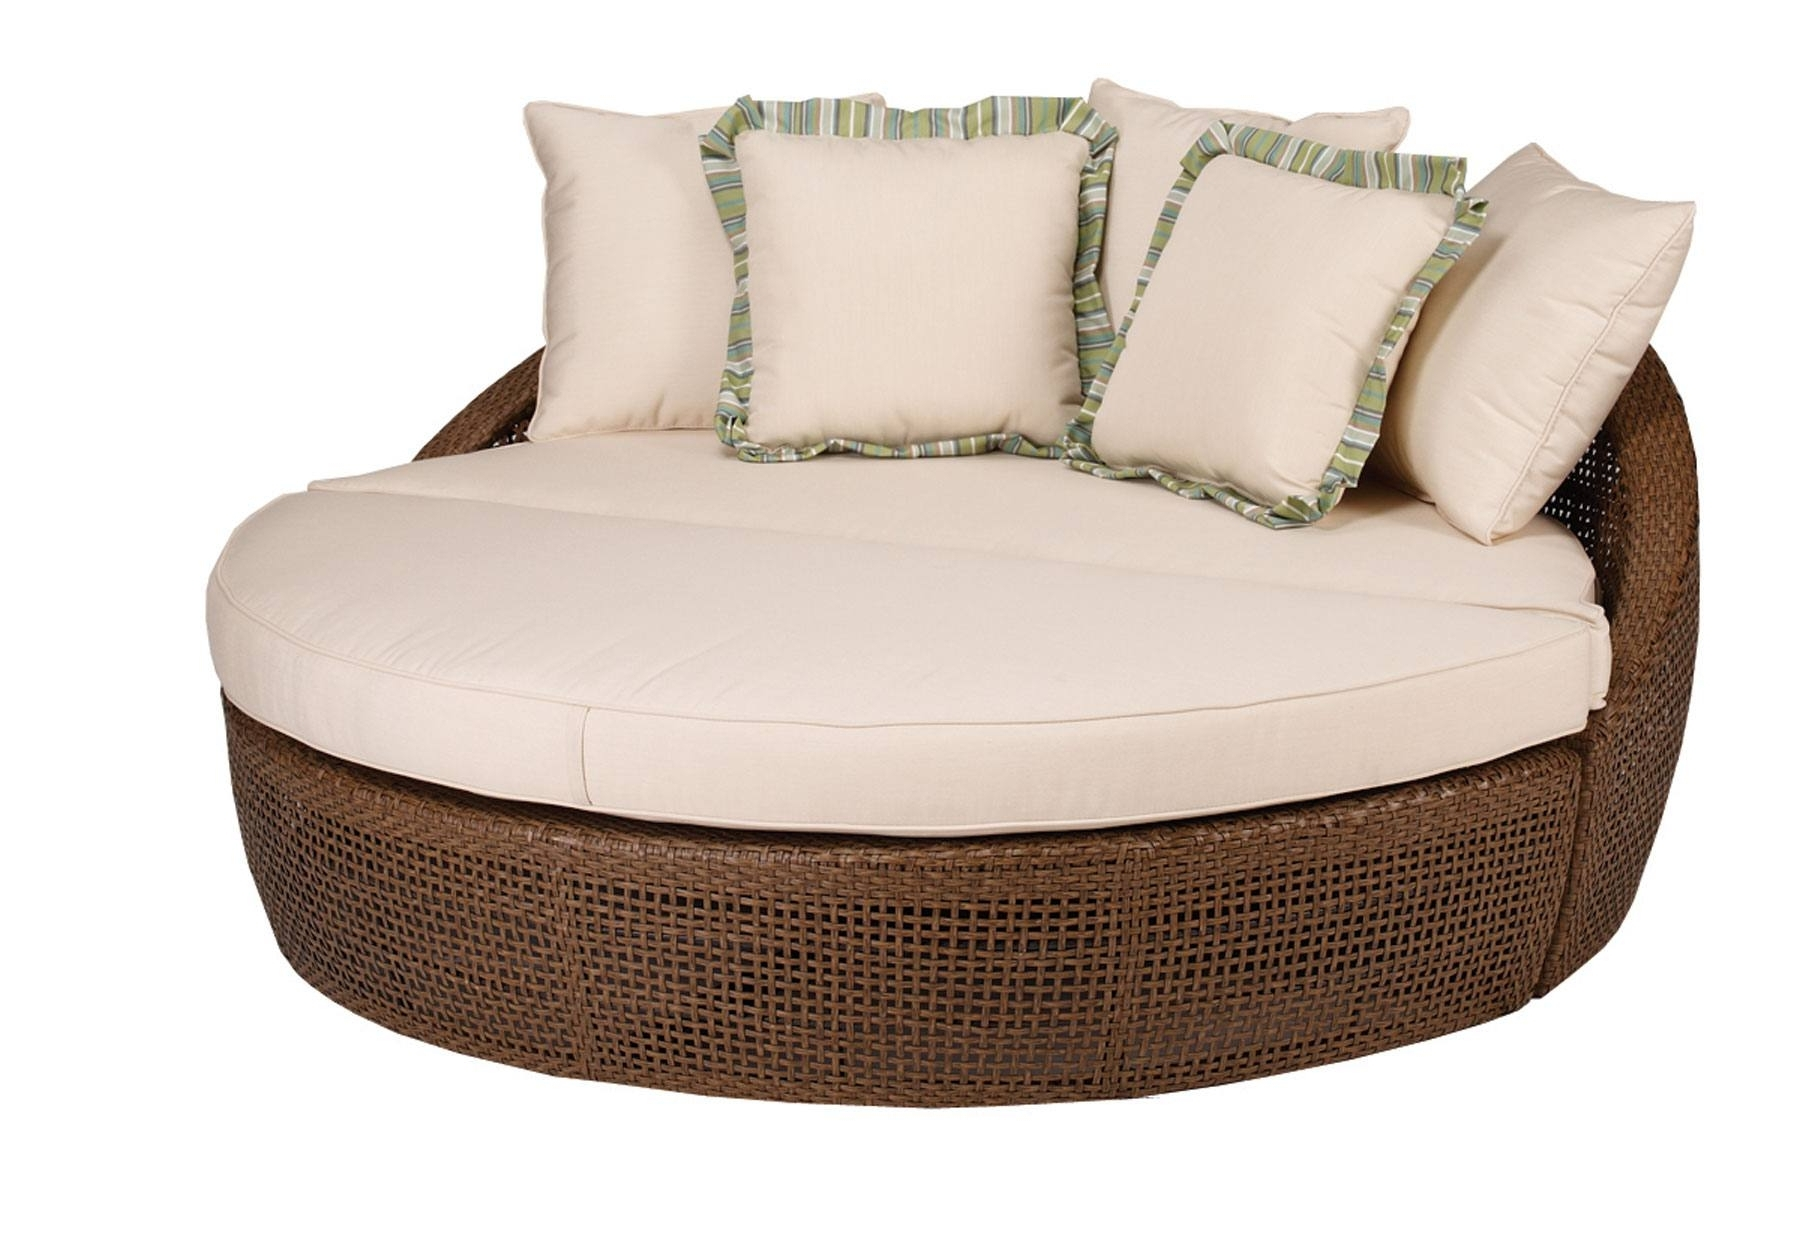 Popular Round Chaise Lounge Chairs • Lounge Chairs Ideas Within Round Chaise Lounges (View 12 of 15)